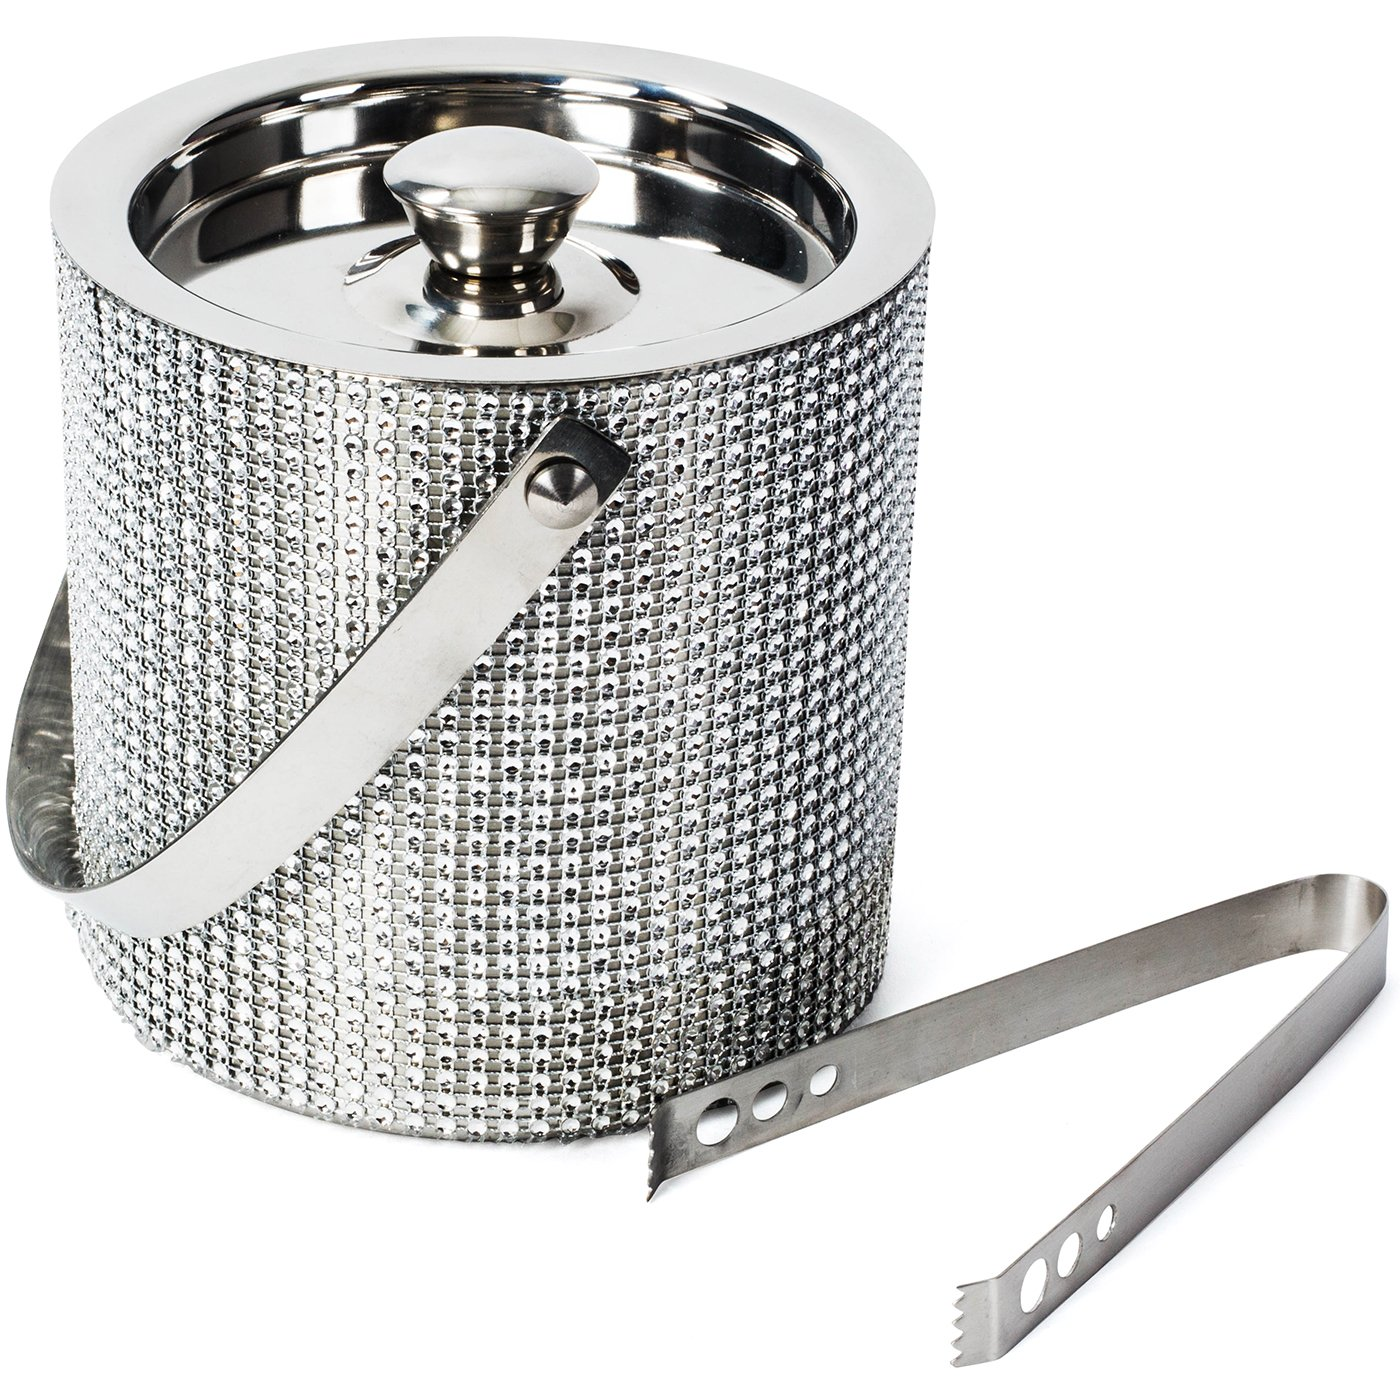 Colleta Home Ice Bucket for Parties - Insulated with Lid, Stainless Steel Double Walled with Handle for Carrying, 1.7 Liter - Ice Bucket with Tong